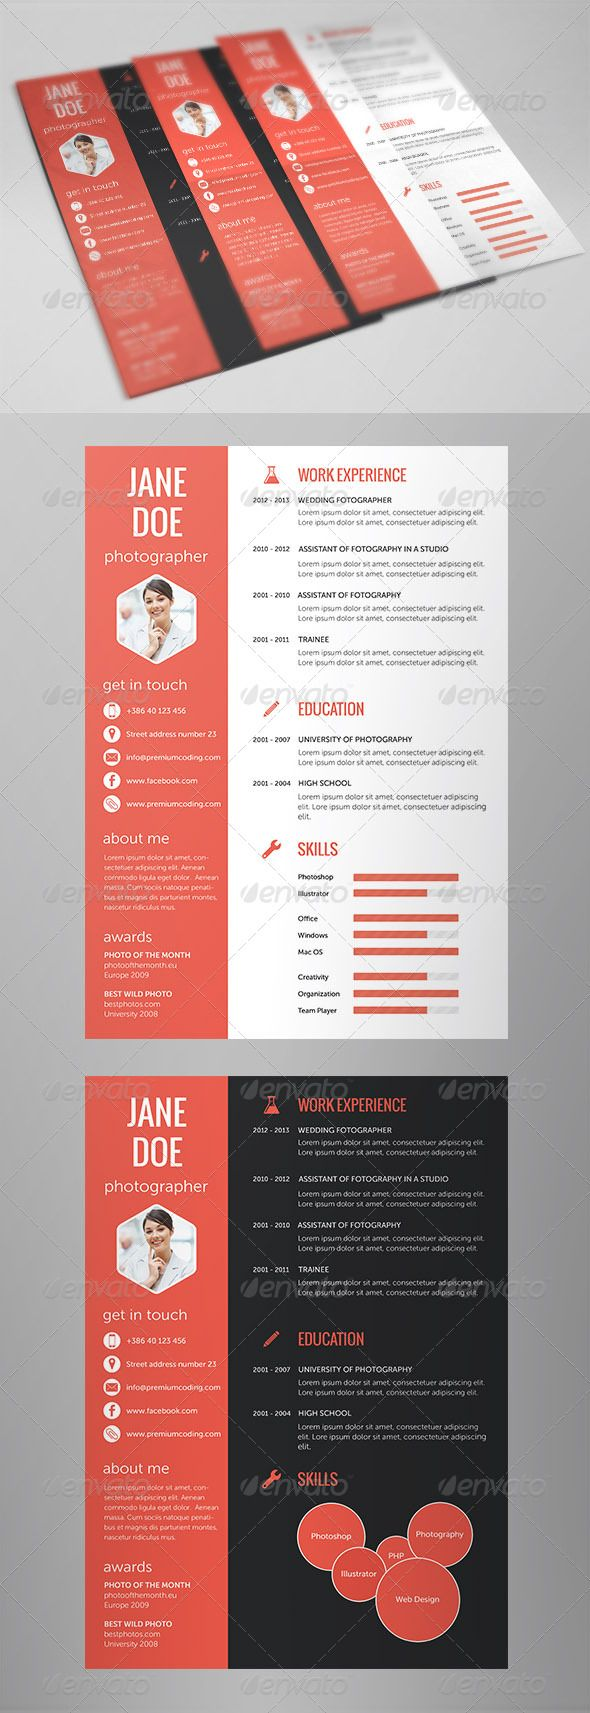 Just published a Flat Design Resume which will help you with your ...